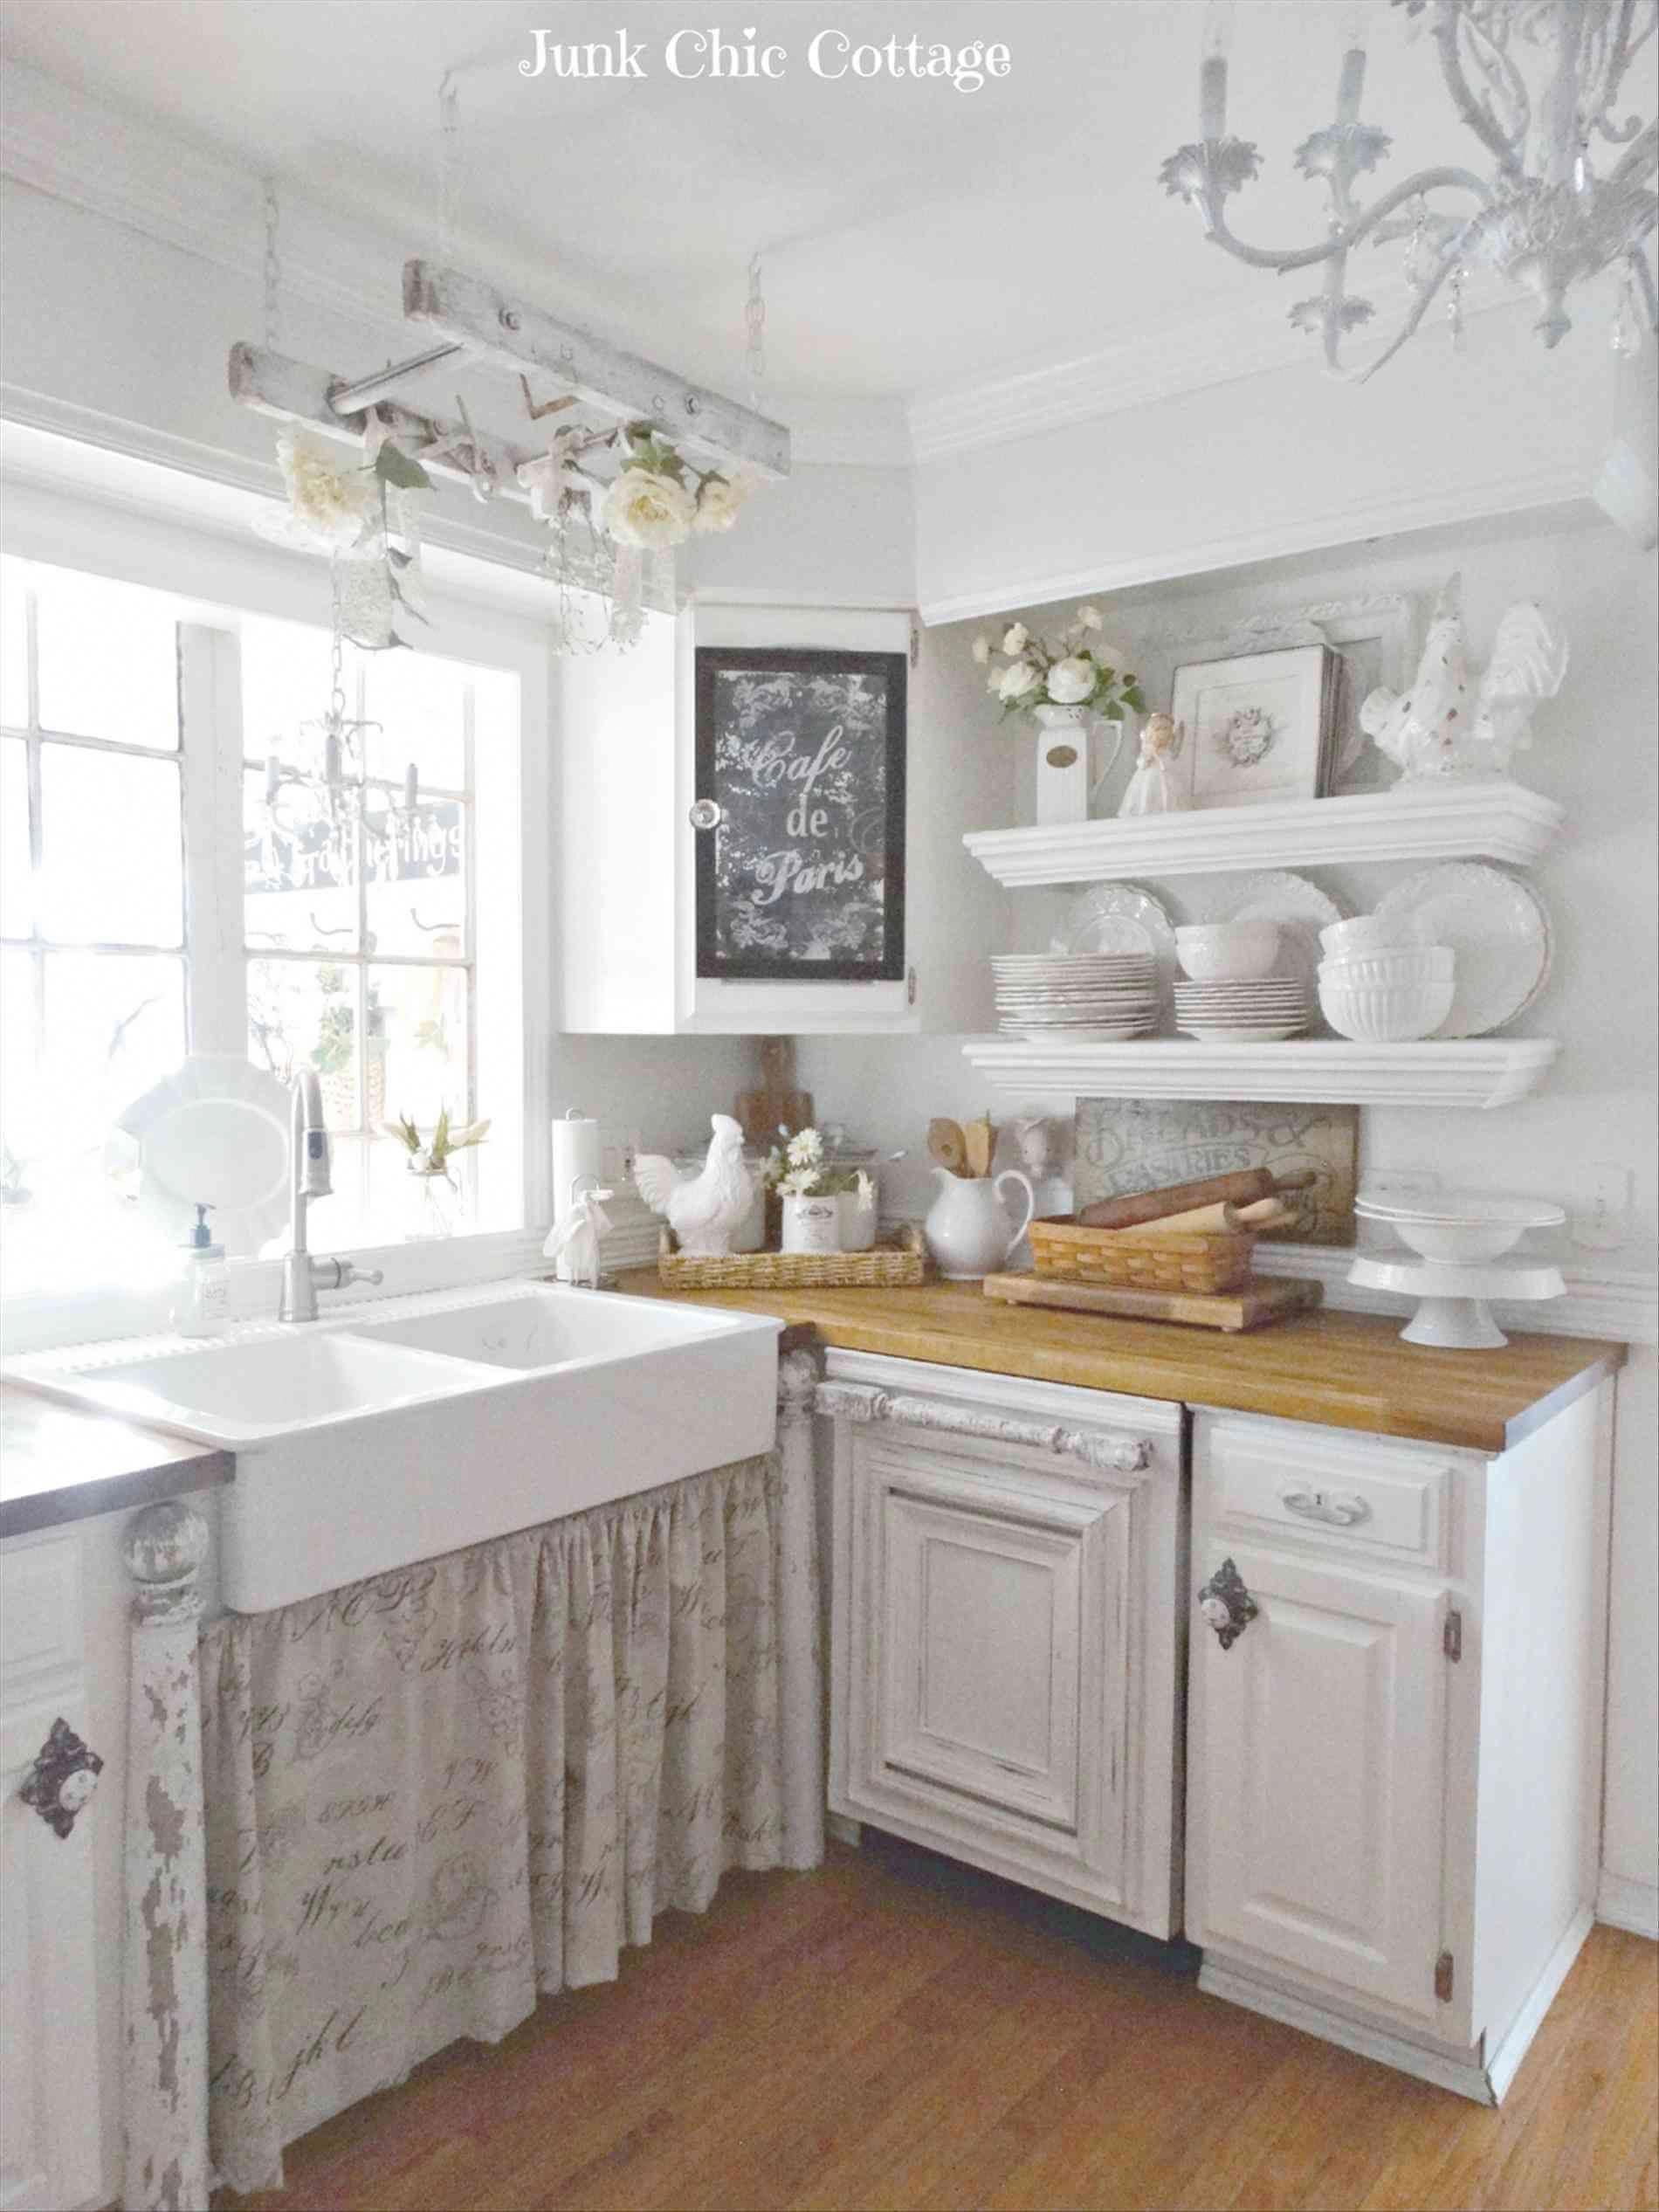 Lavello Cucina Shabby Chic.Tips For Shabby Chic Decor Shabbychicdecor Shabby Chic Bianco